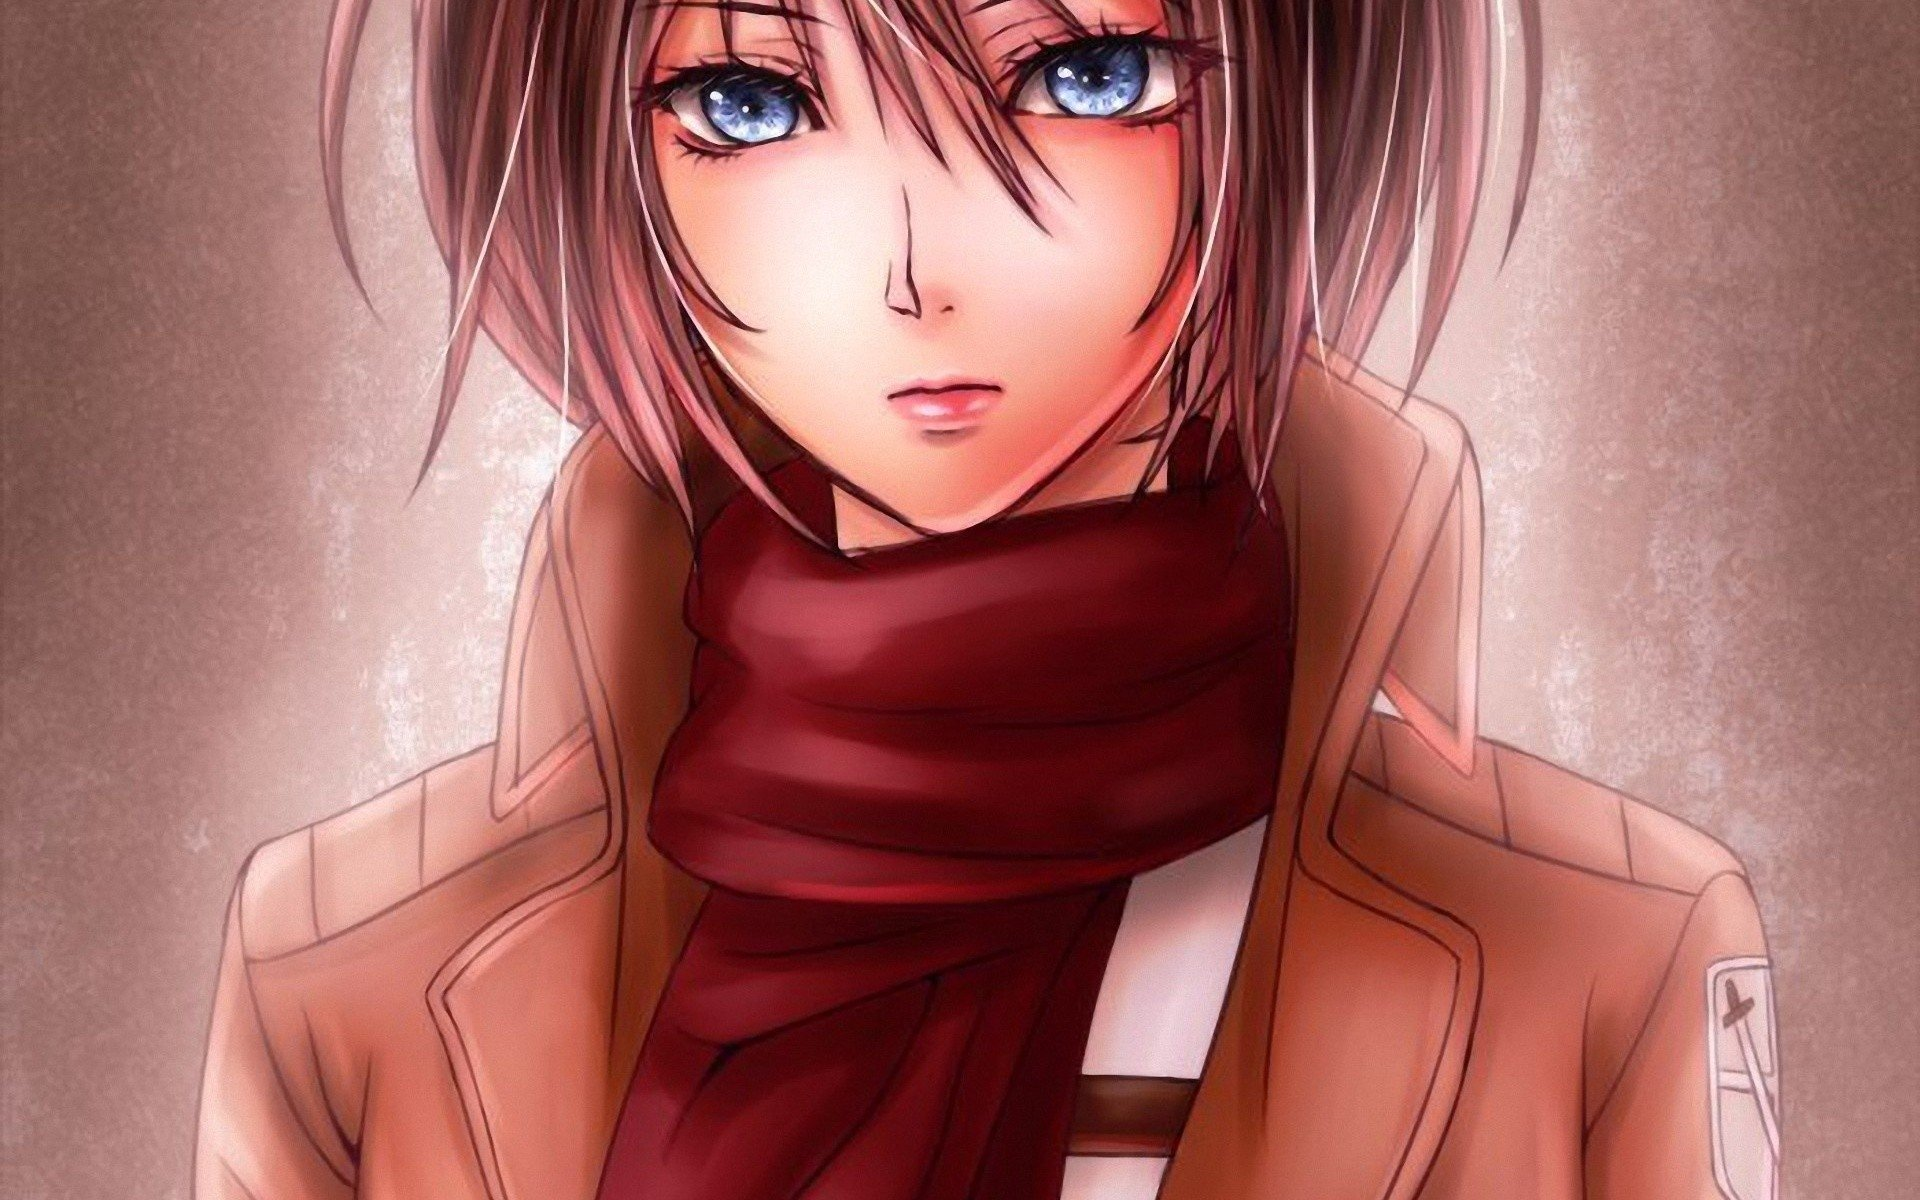 656 mikasa ackerman hd wallpapers background images wallpaper hd wallpaper background image id434487 voltagebd Images